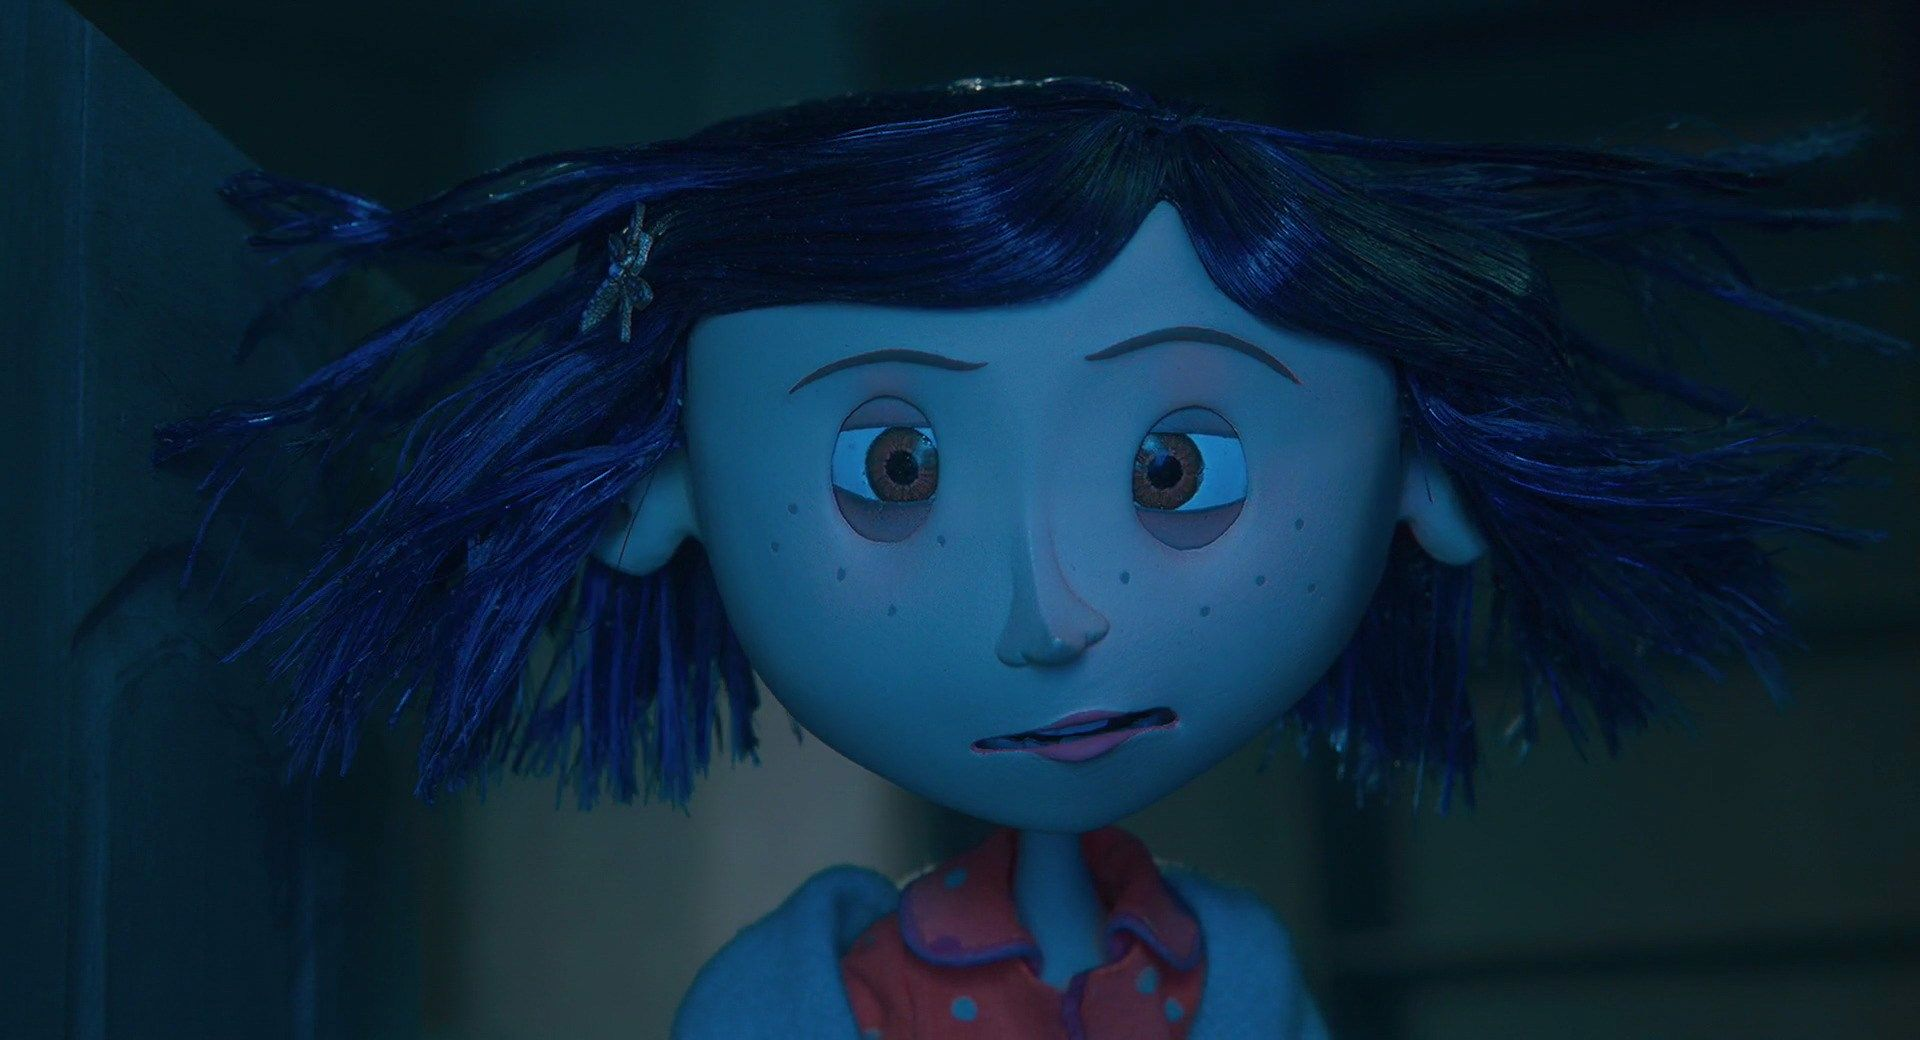 Coraline 2009 Animation Screencaps In 2020 Coraline Movie Coraline Aesthetic Coraline